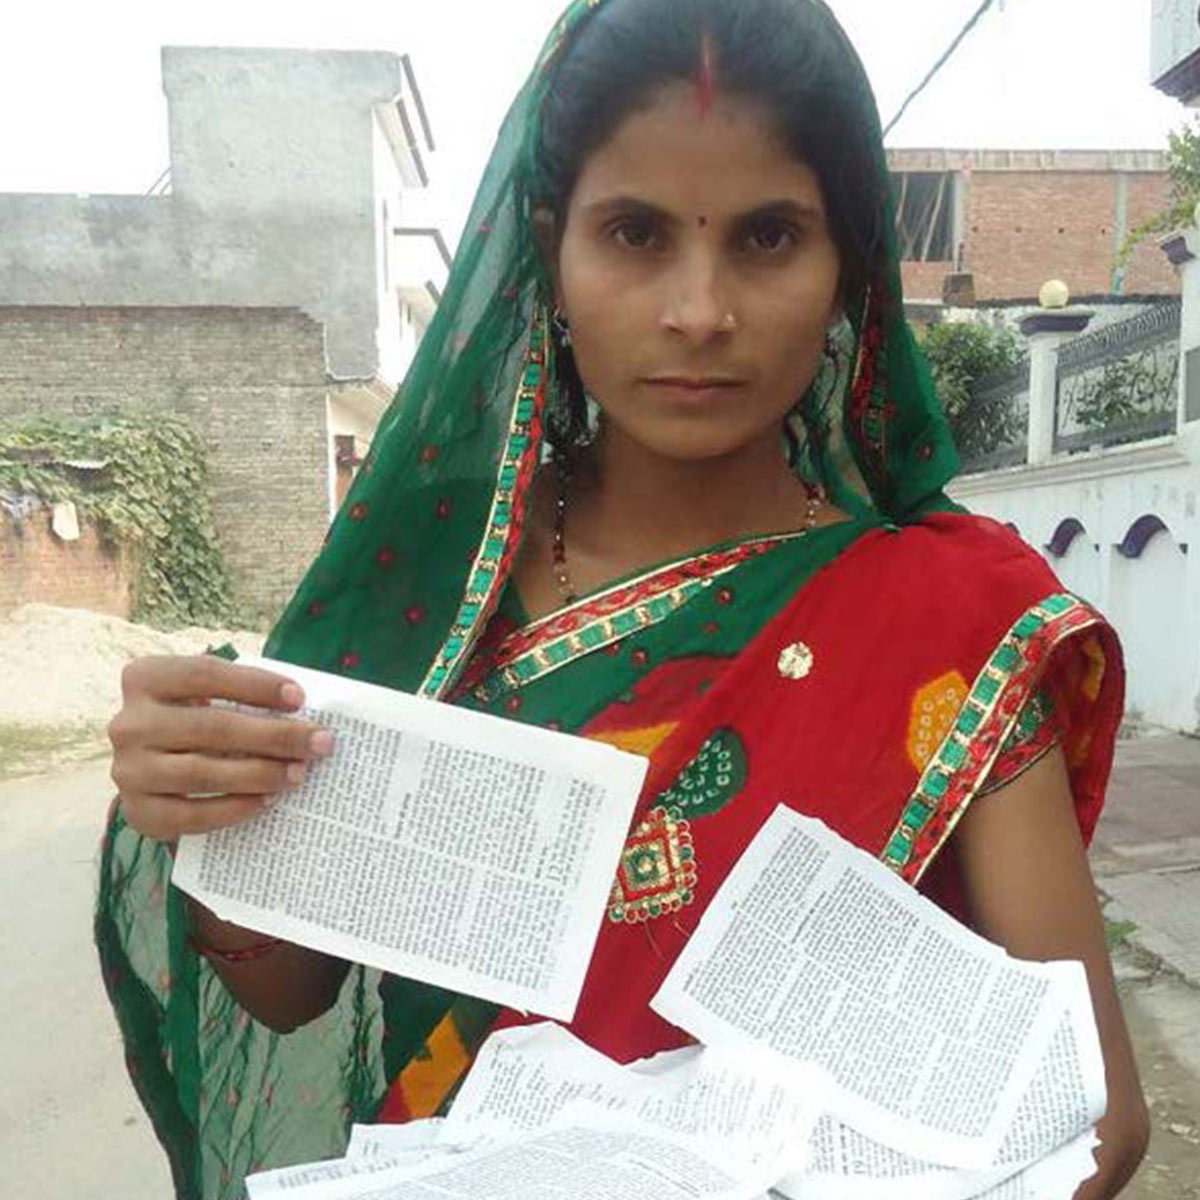 Poonam holding a torn bible